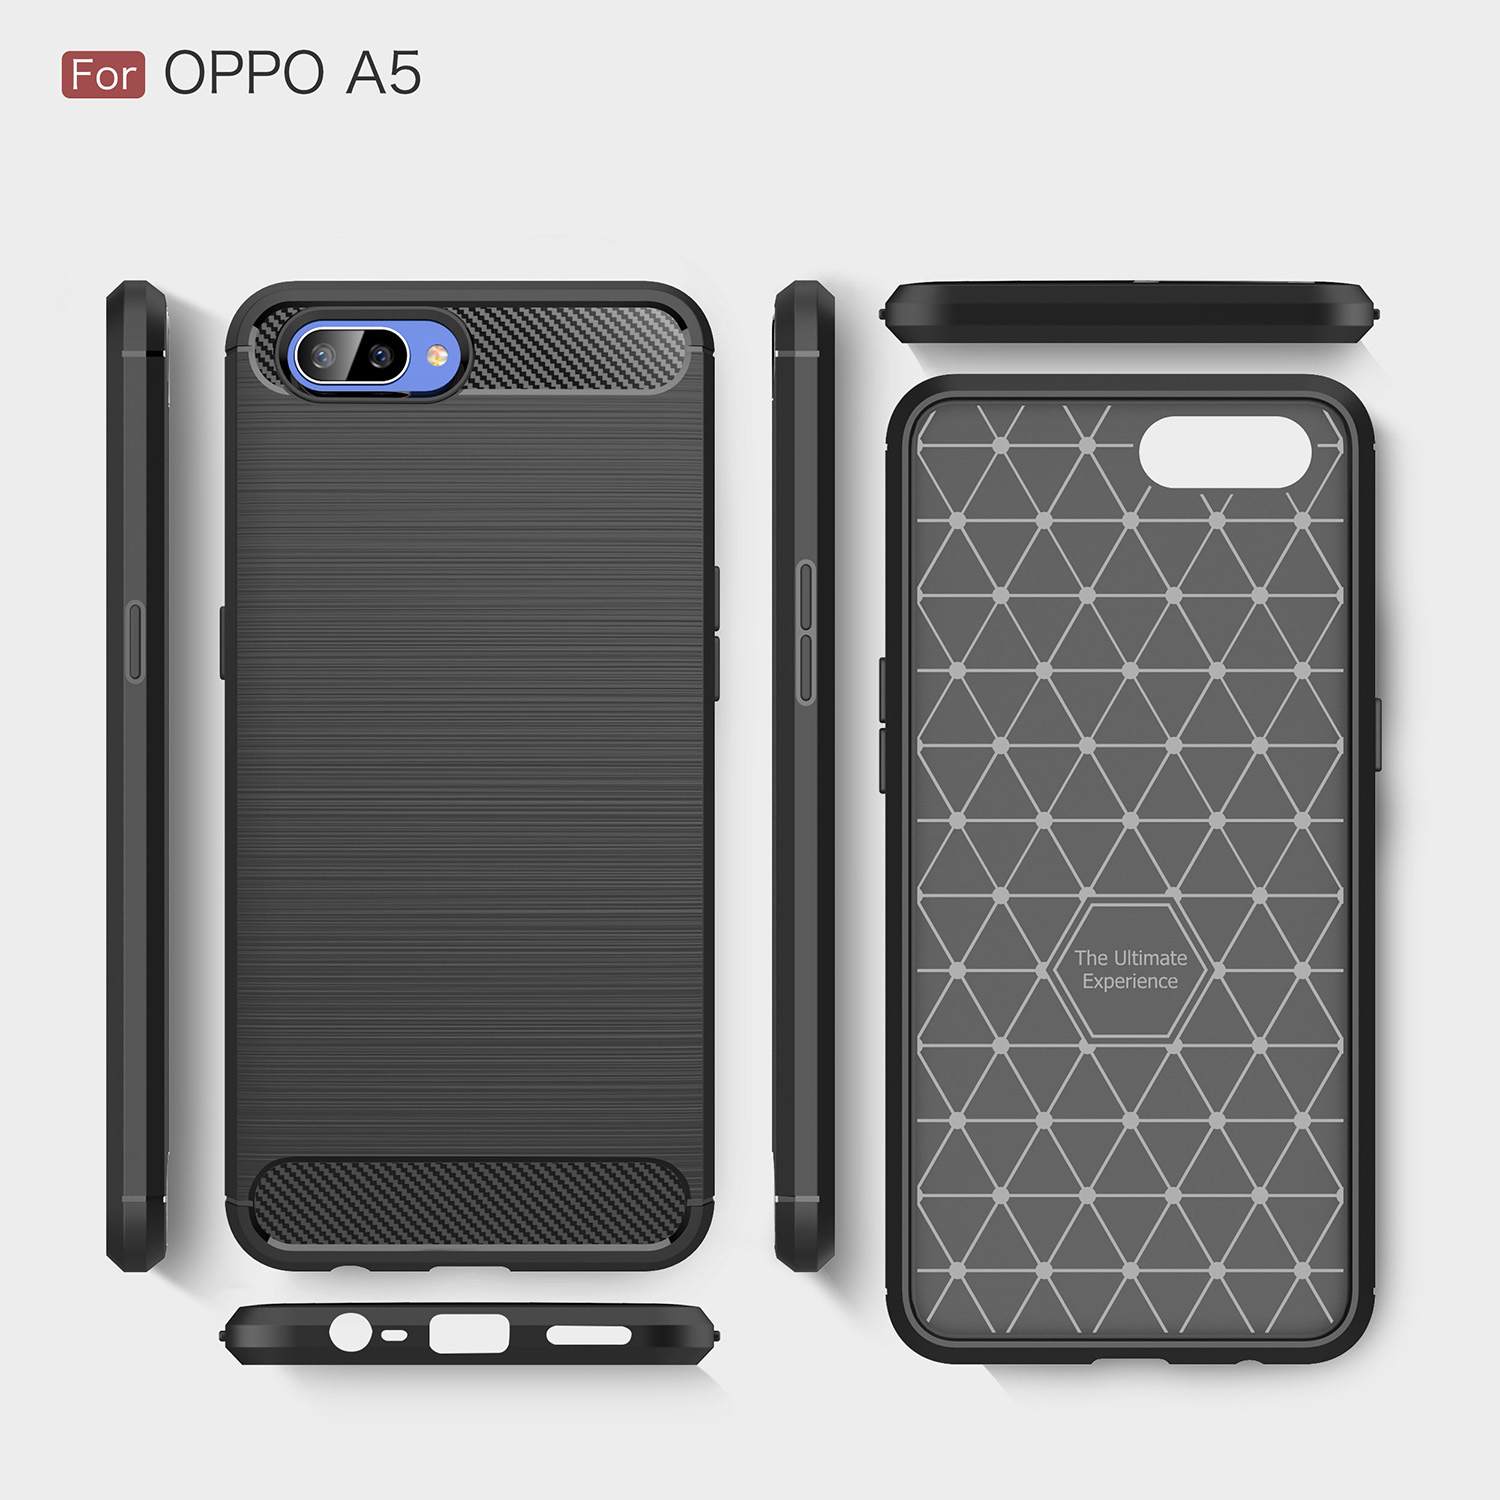 "Wolfsay Carbon Fiber Case Oppo A5 Phone Case Oppo A3S Soft Silicone Cover For Oppo A3s Case Anti Slip Shell For Oppo A3s 6 2"" in Fitted Cases from"